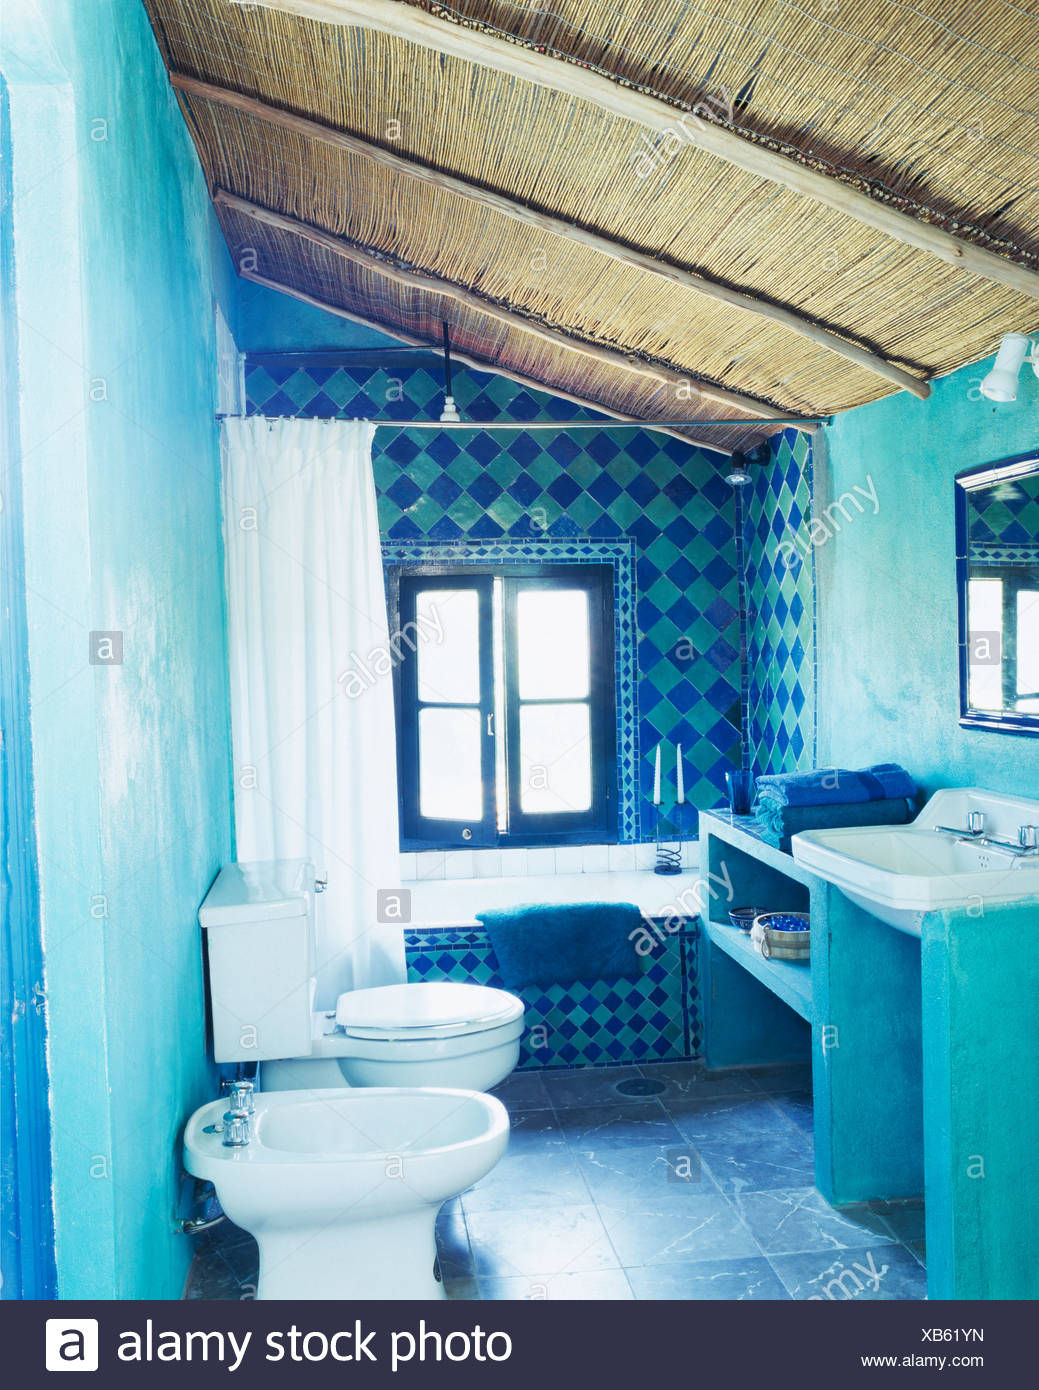 Thatched ceiling in turquoise Spanish bathroom with decorative blue+ ...